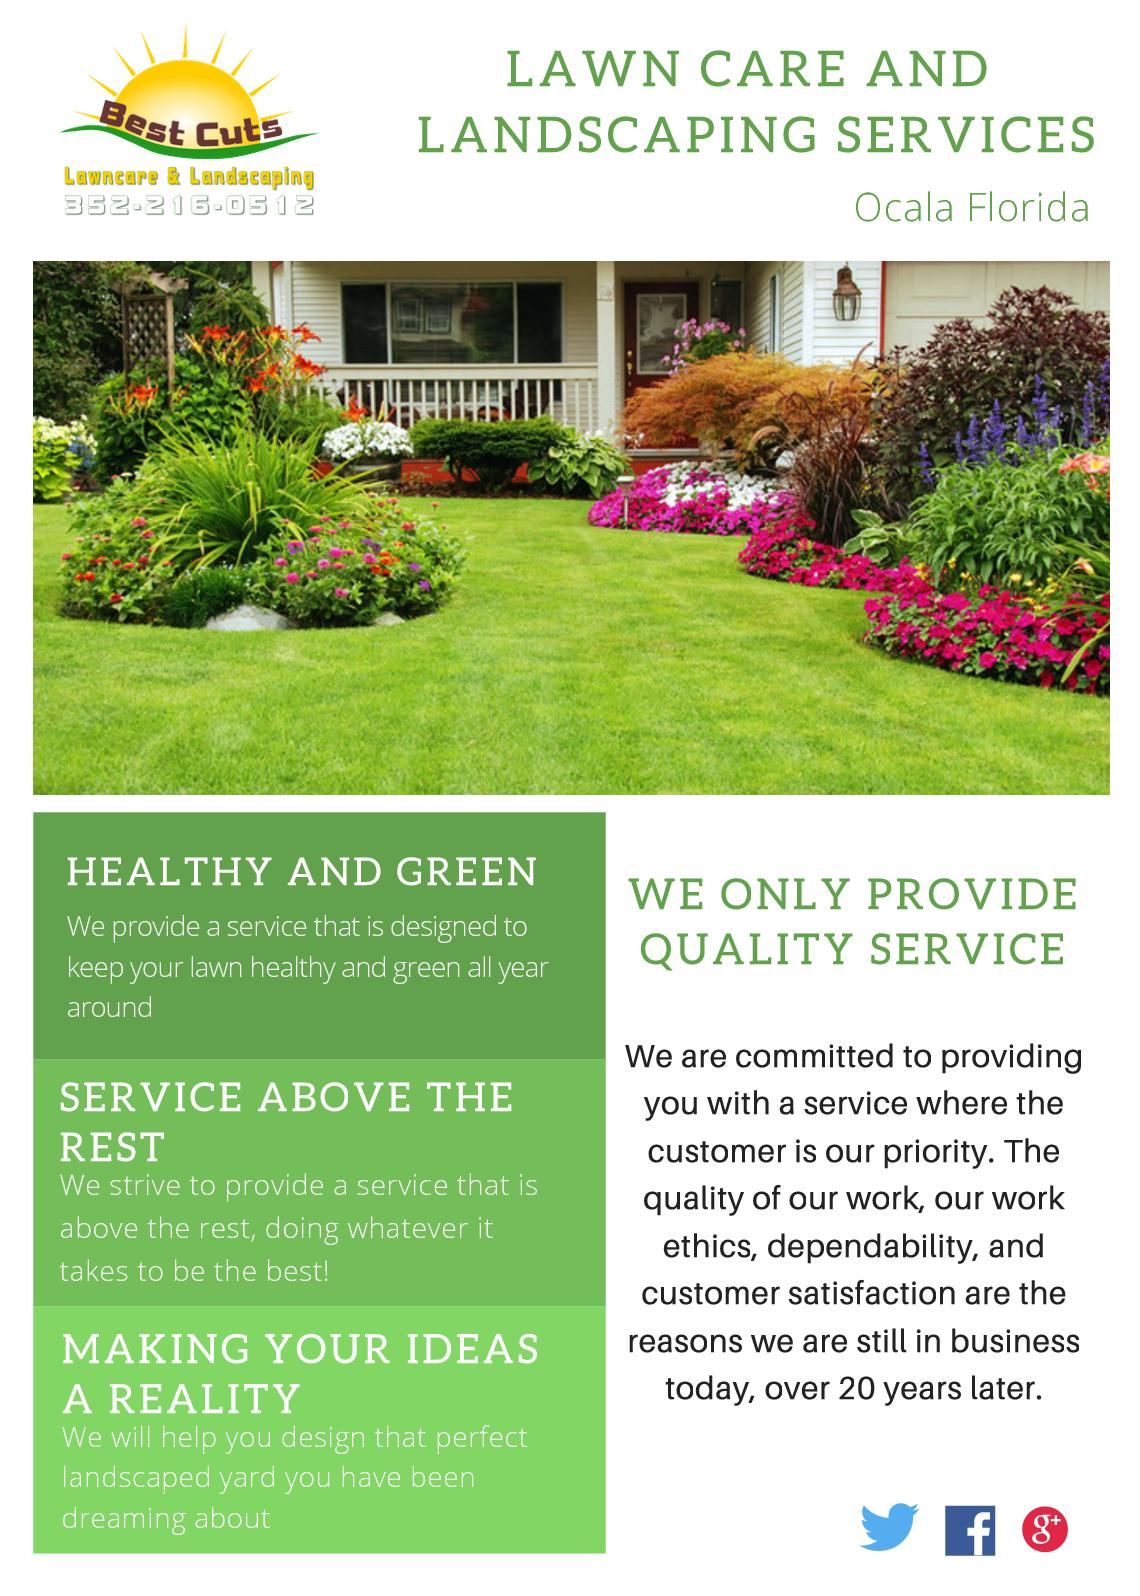 Calam o lawn care and landscaping services ocala florida for Lawn and garden care services